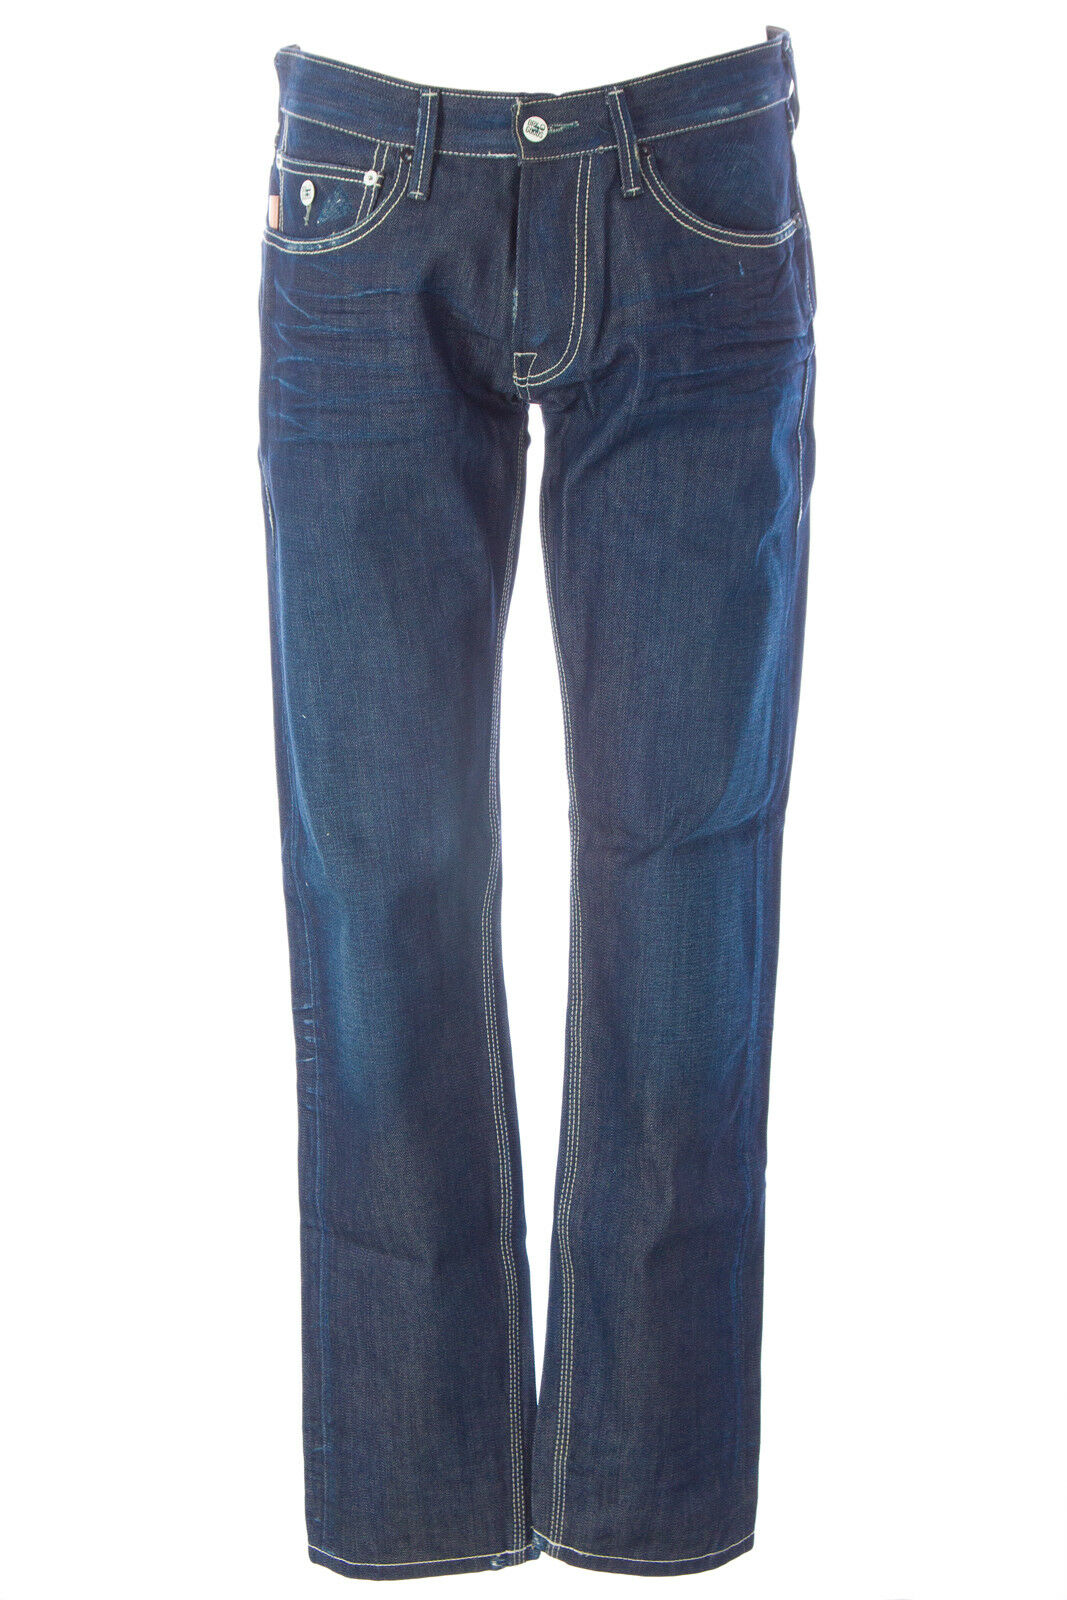 blueE BLOOD Men's Focus CBR Denim Button Fly Jeans MS08D21 NWT